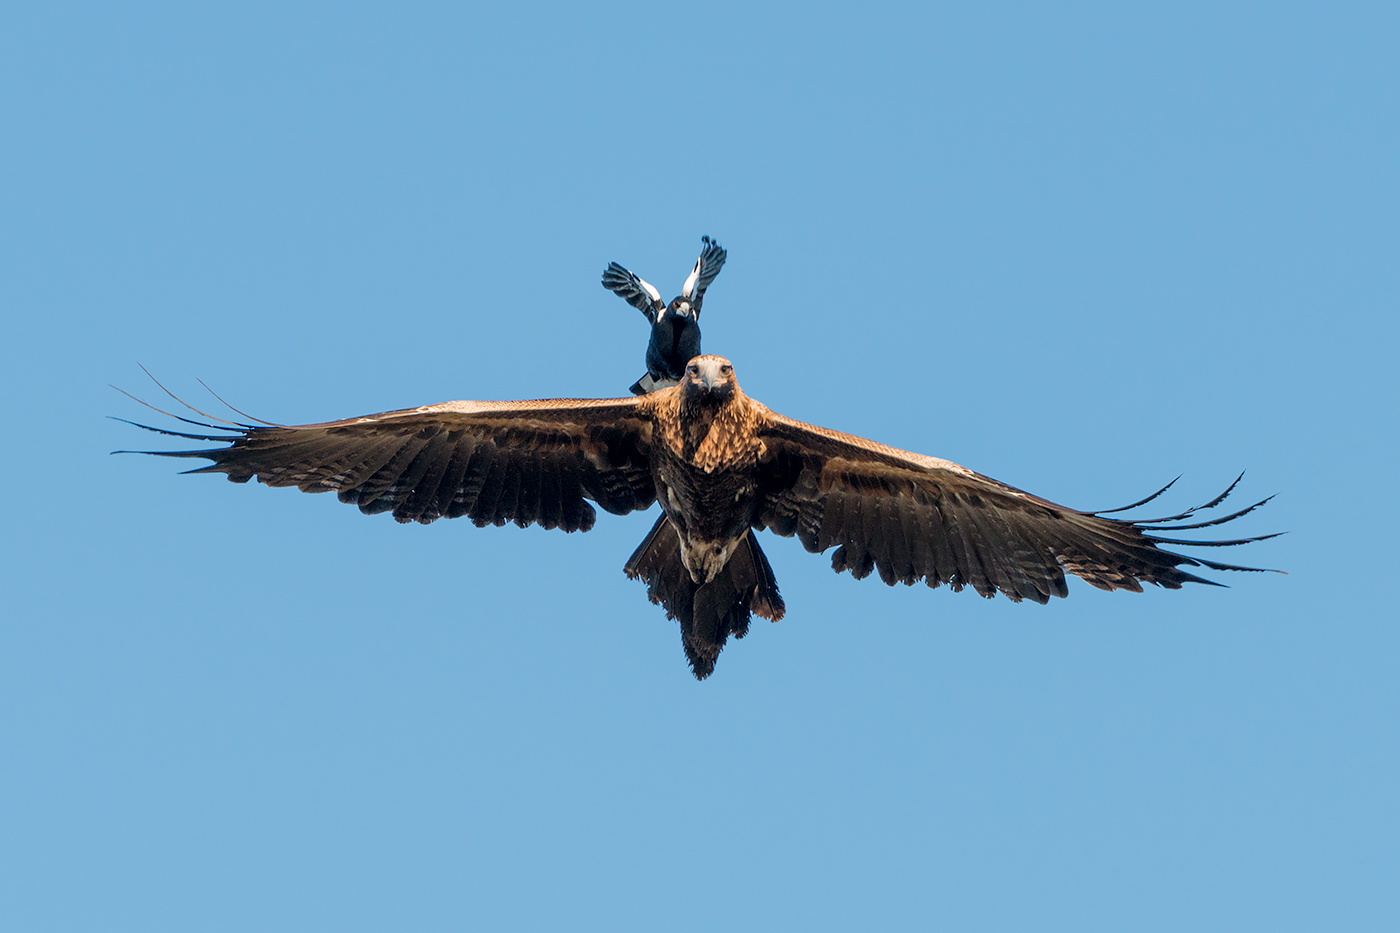 Australian Magpie, Wedge-tailed Eagle